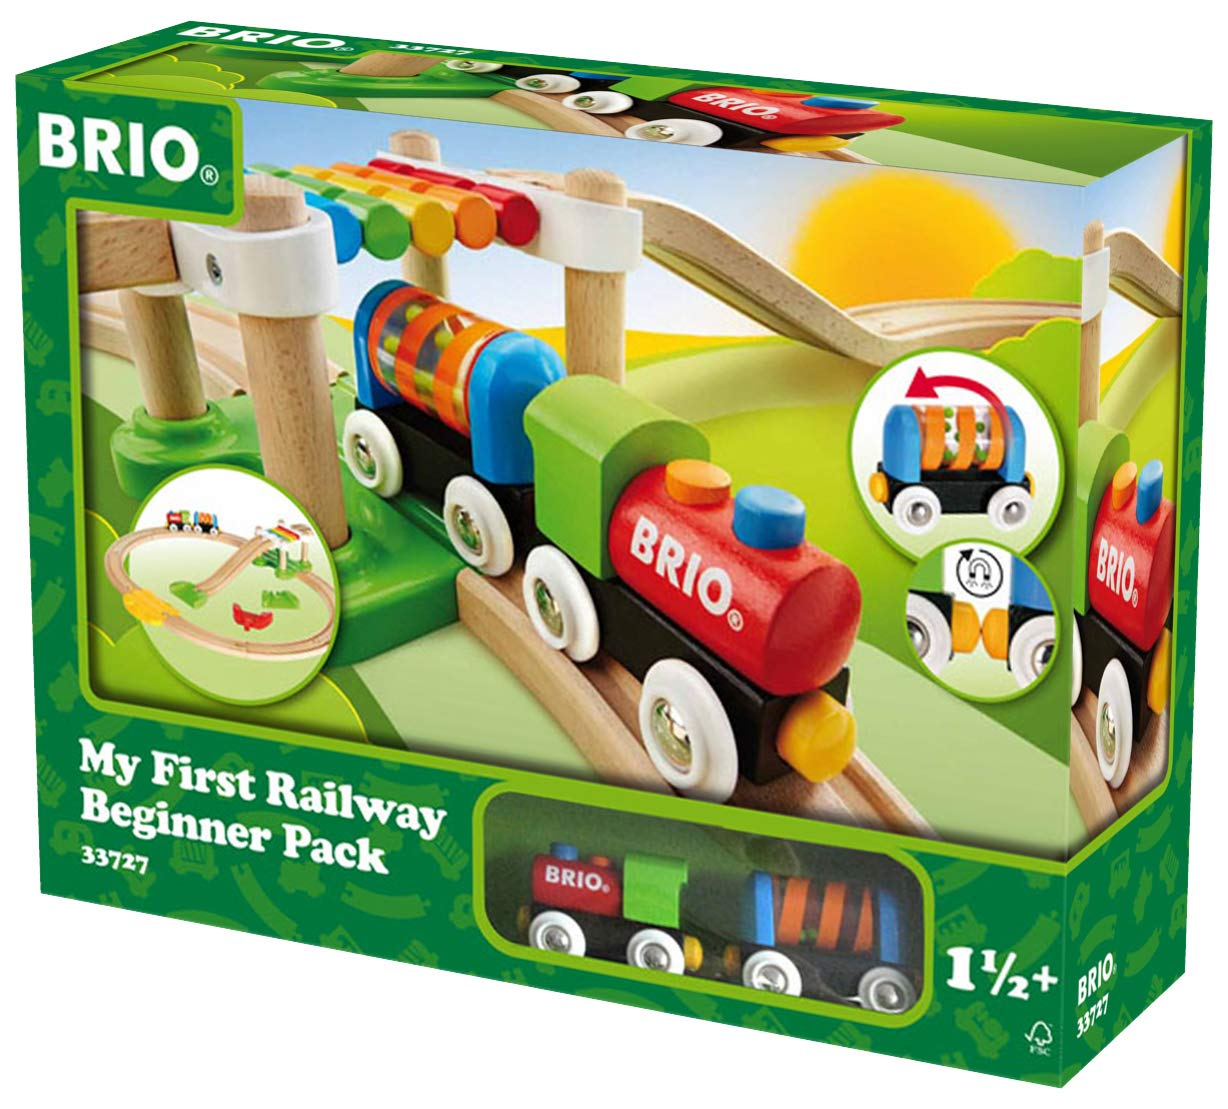 Top 9 Best Train Sets for Toddlers Reviews in 2021 14